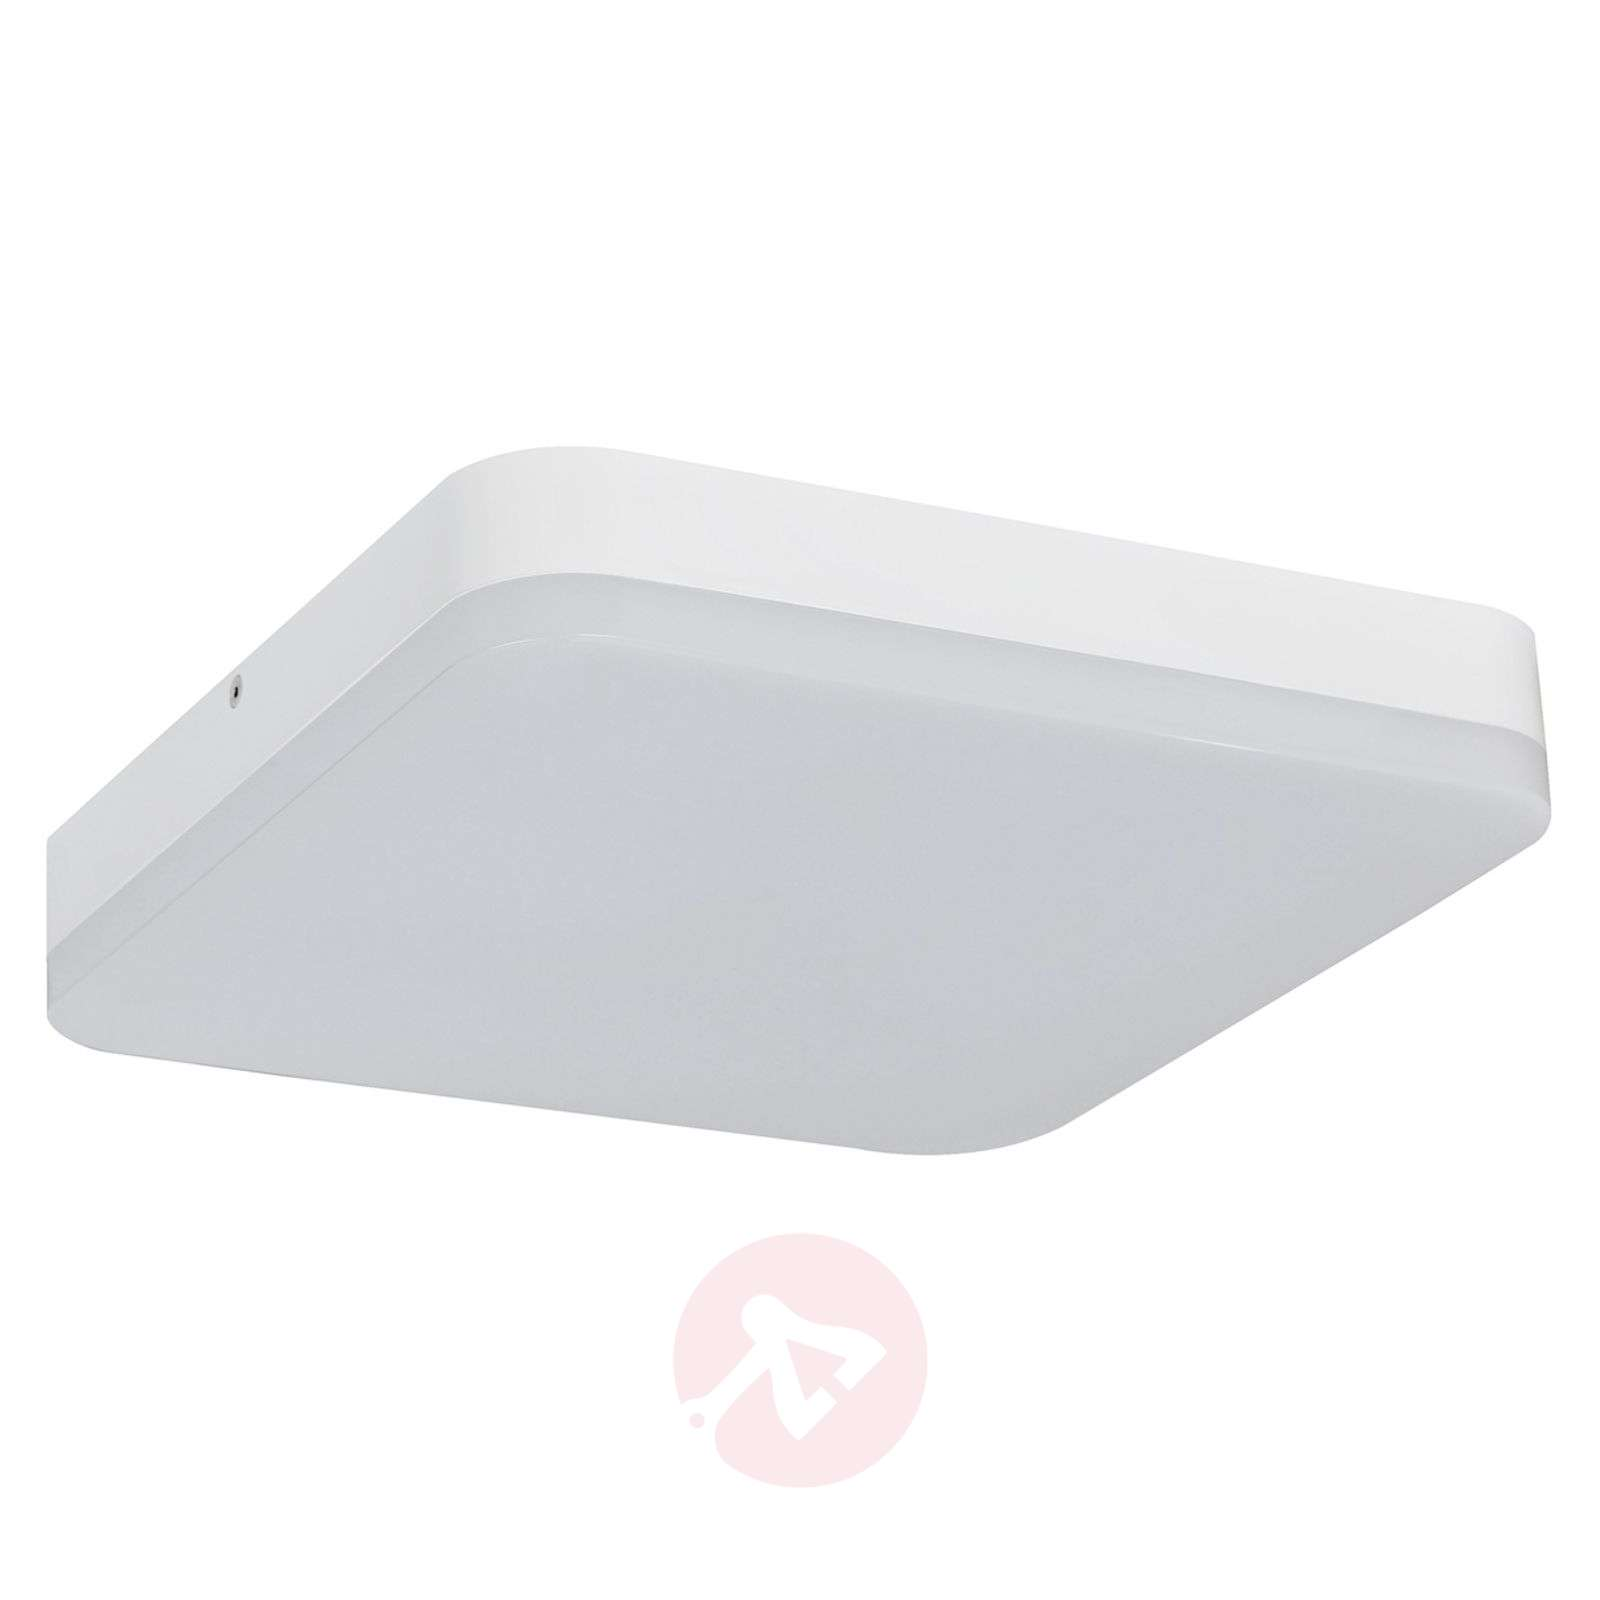 Lampa sufitowa LED Office Square